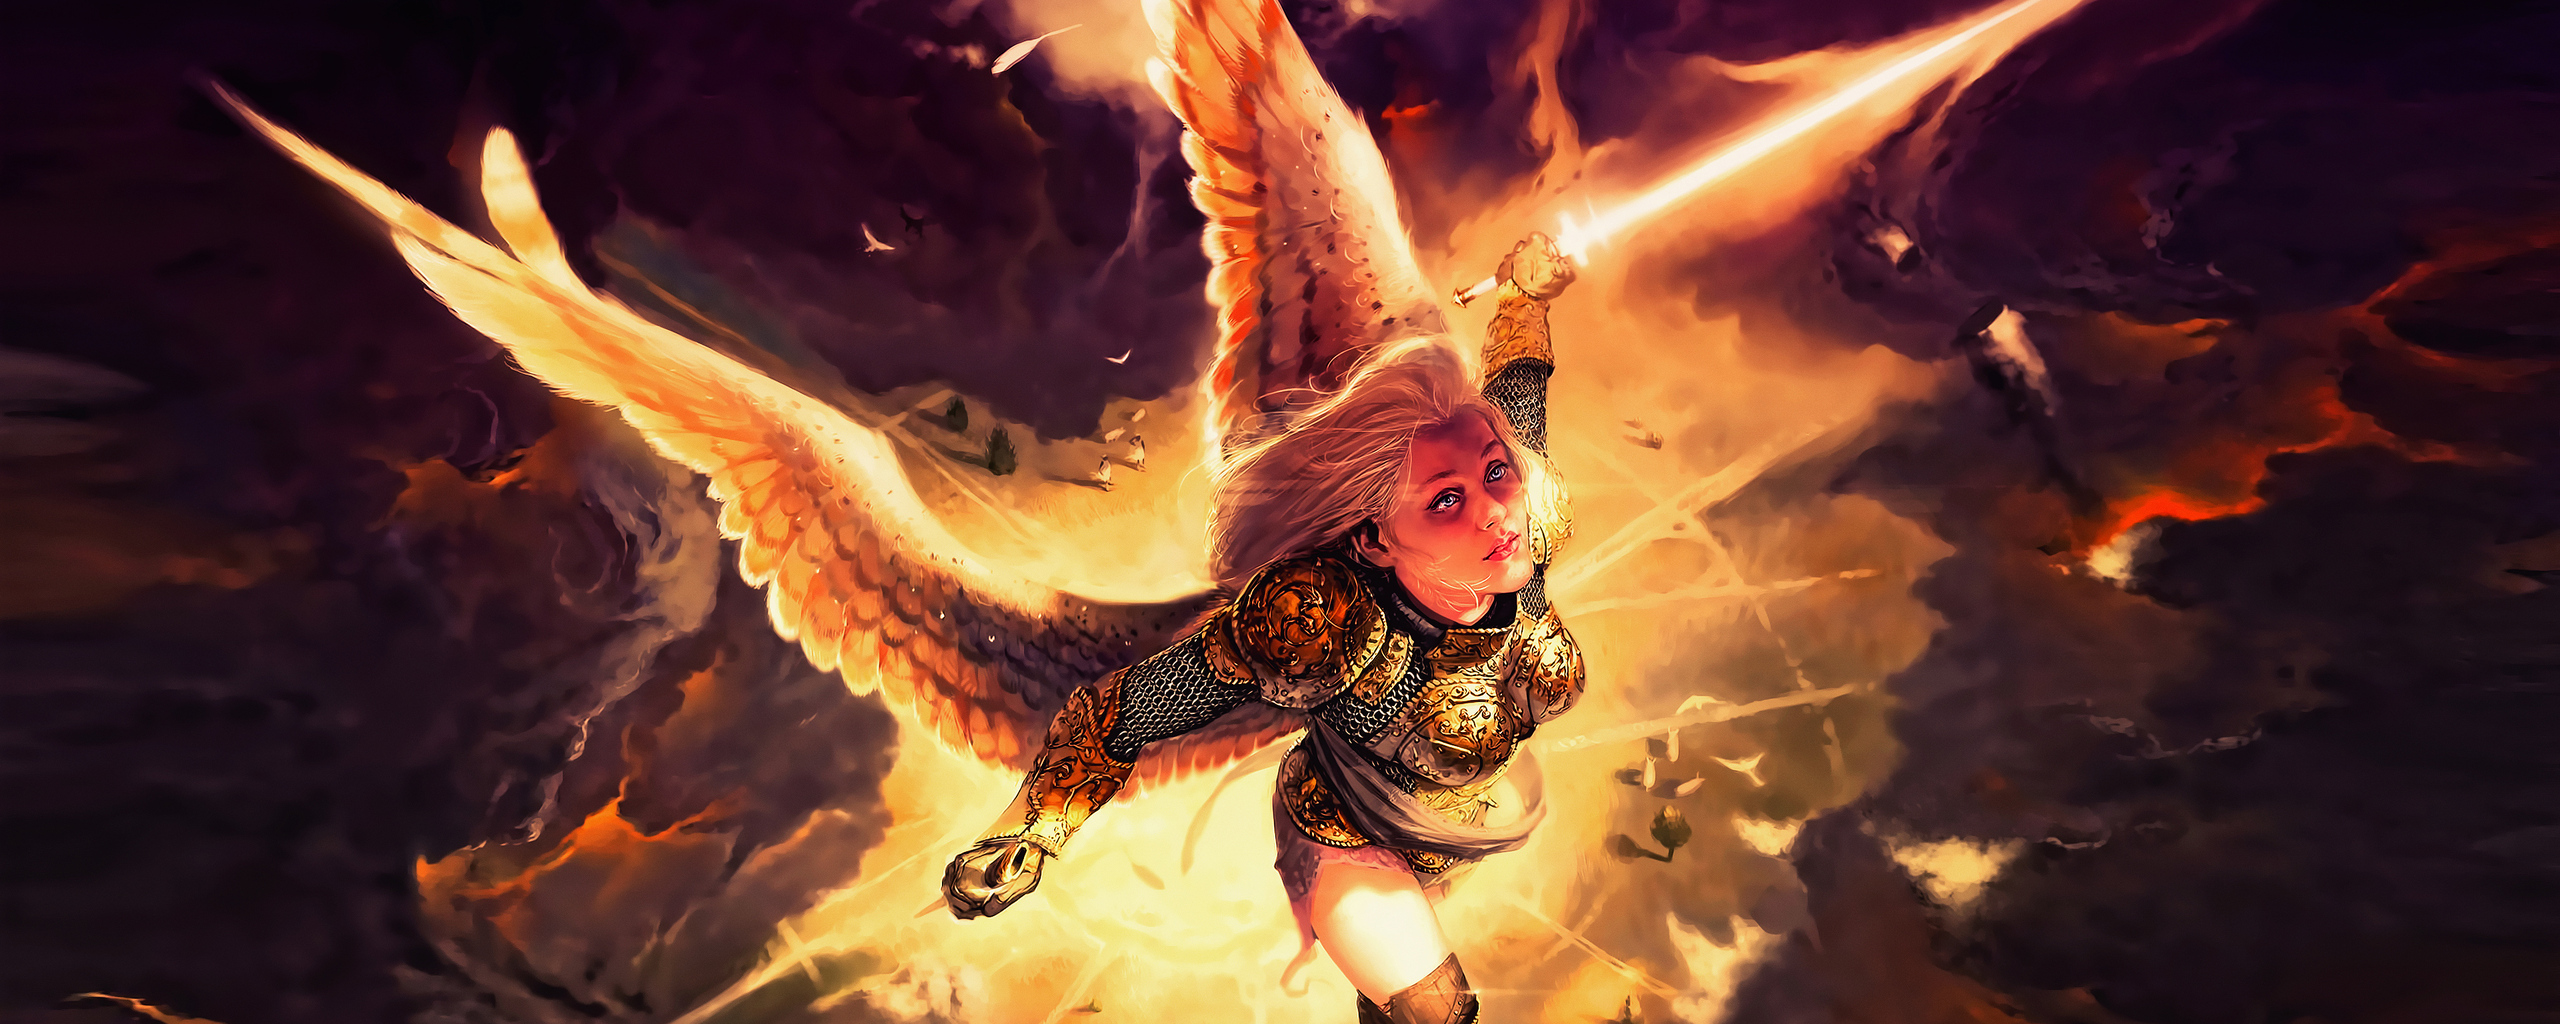 gold-angel-fantasy-girl-with-wings-4k-ce.jpg